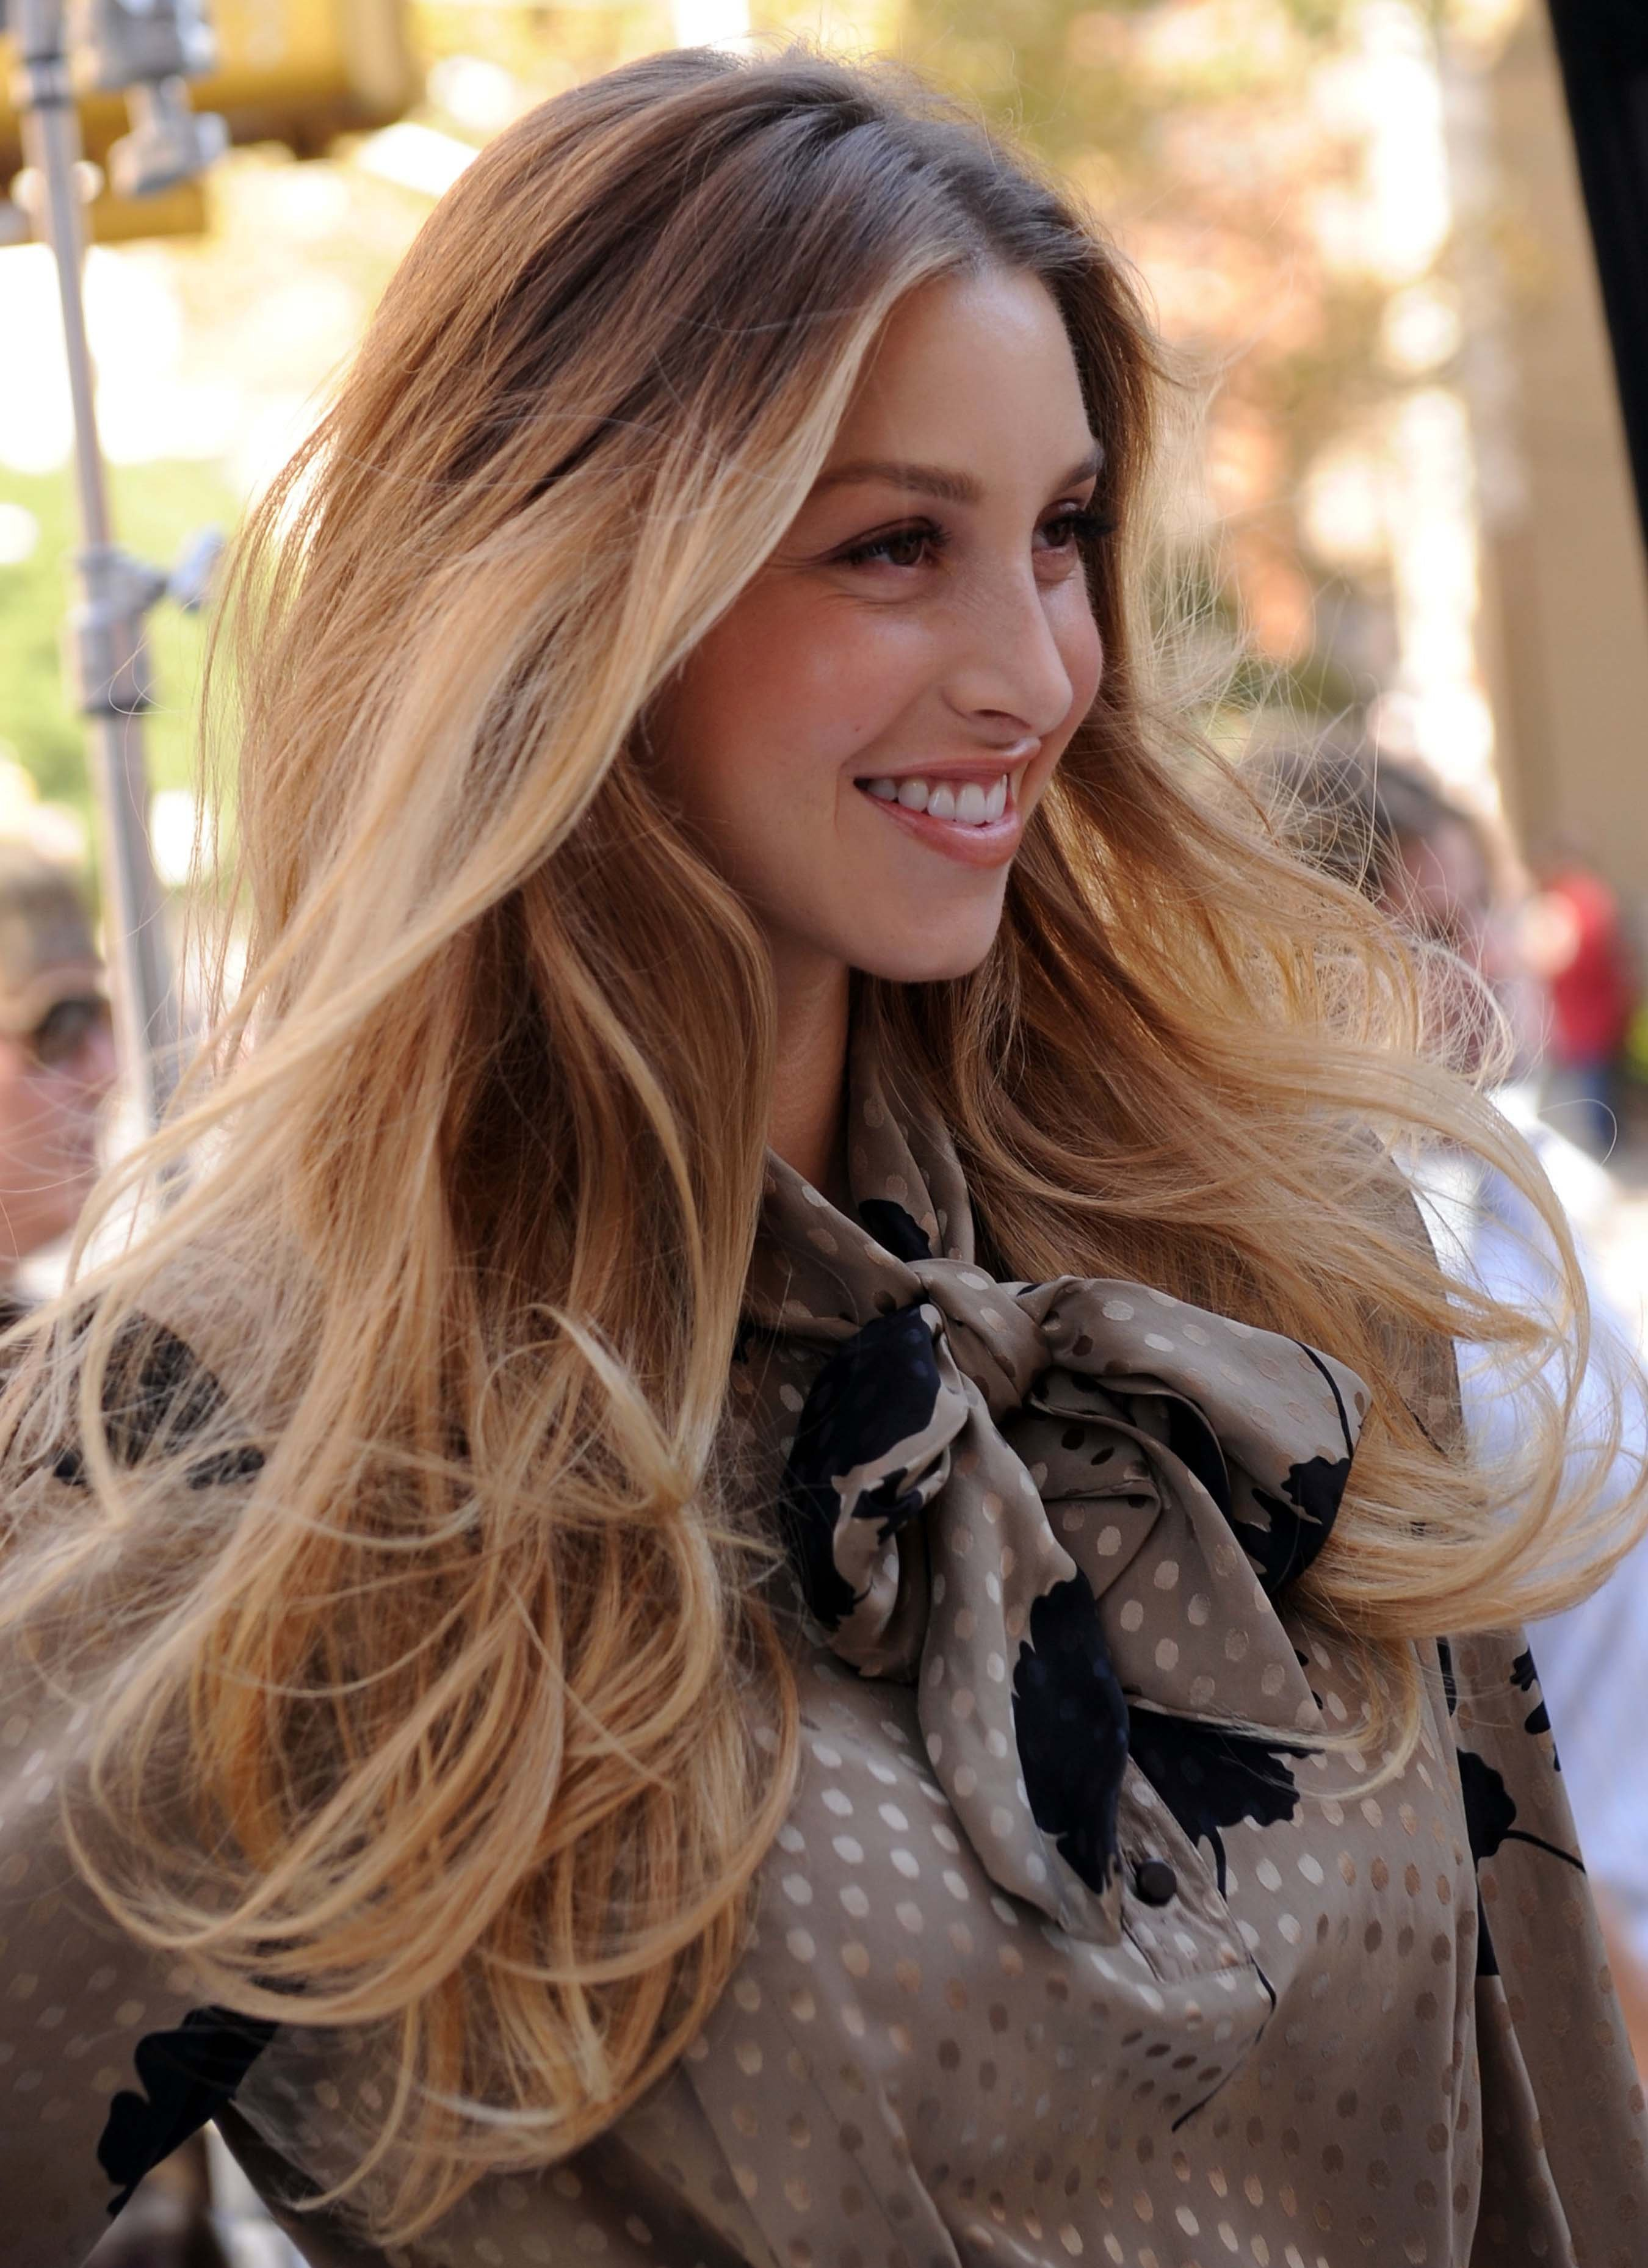 The Best Ombre Hair Color Stylish Images Full Hd Morewallpapers Com Pictures